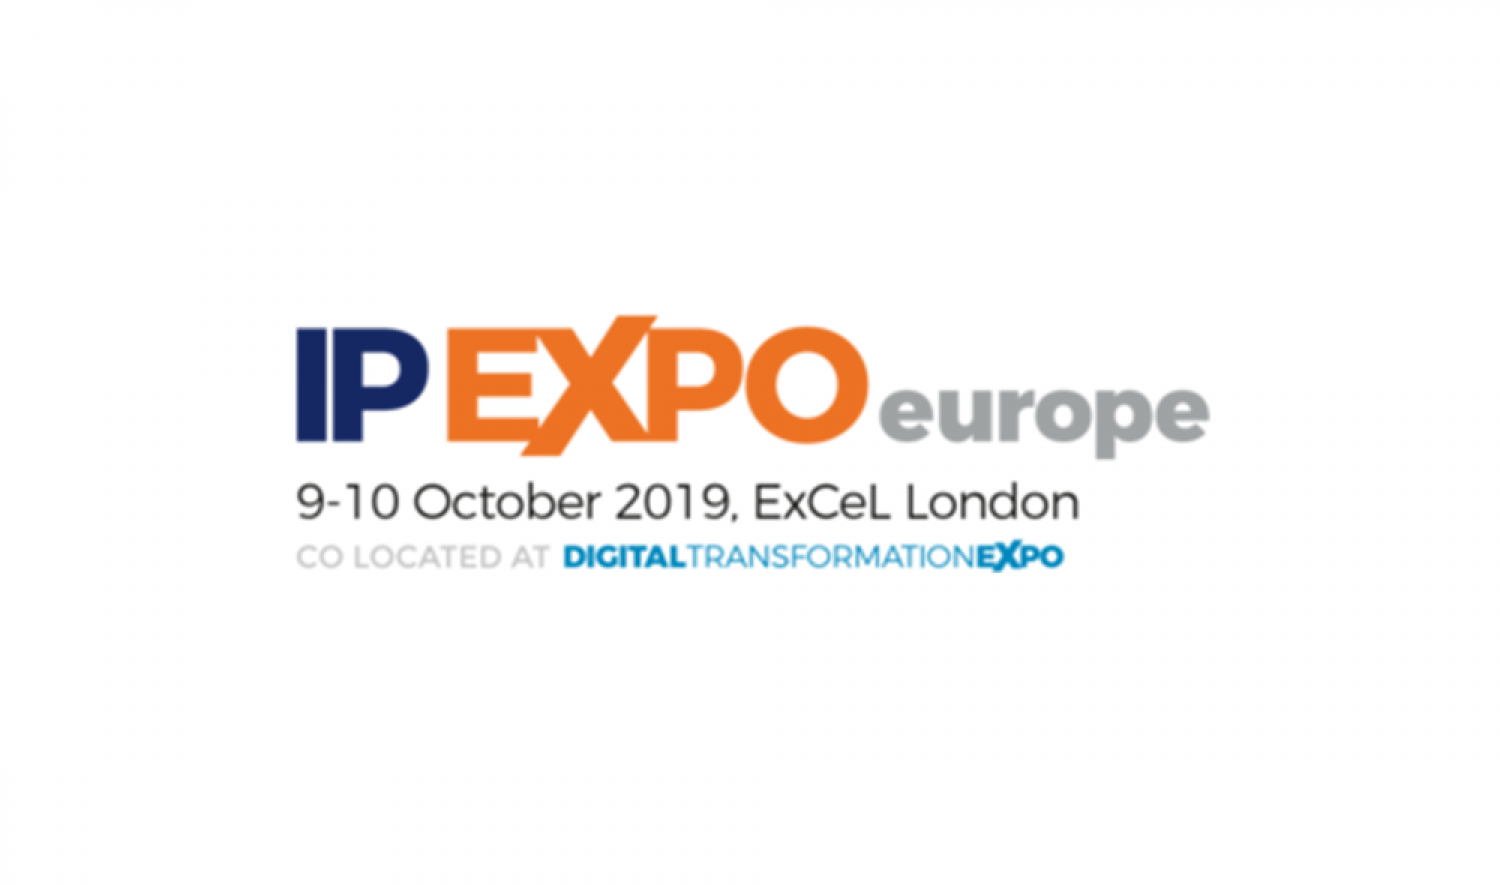 IP EXPO event logo